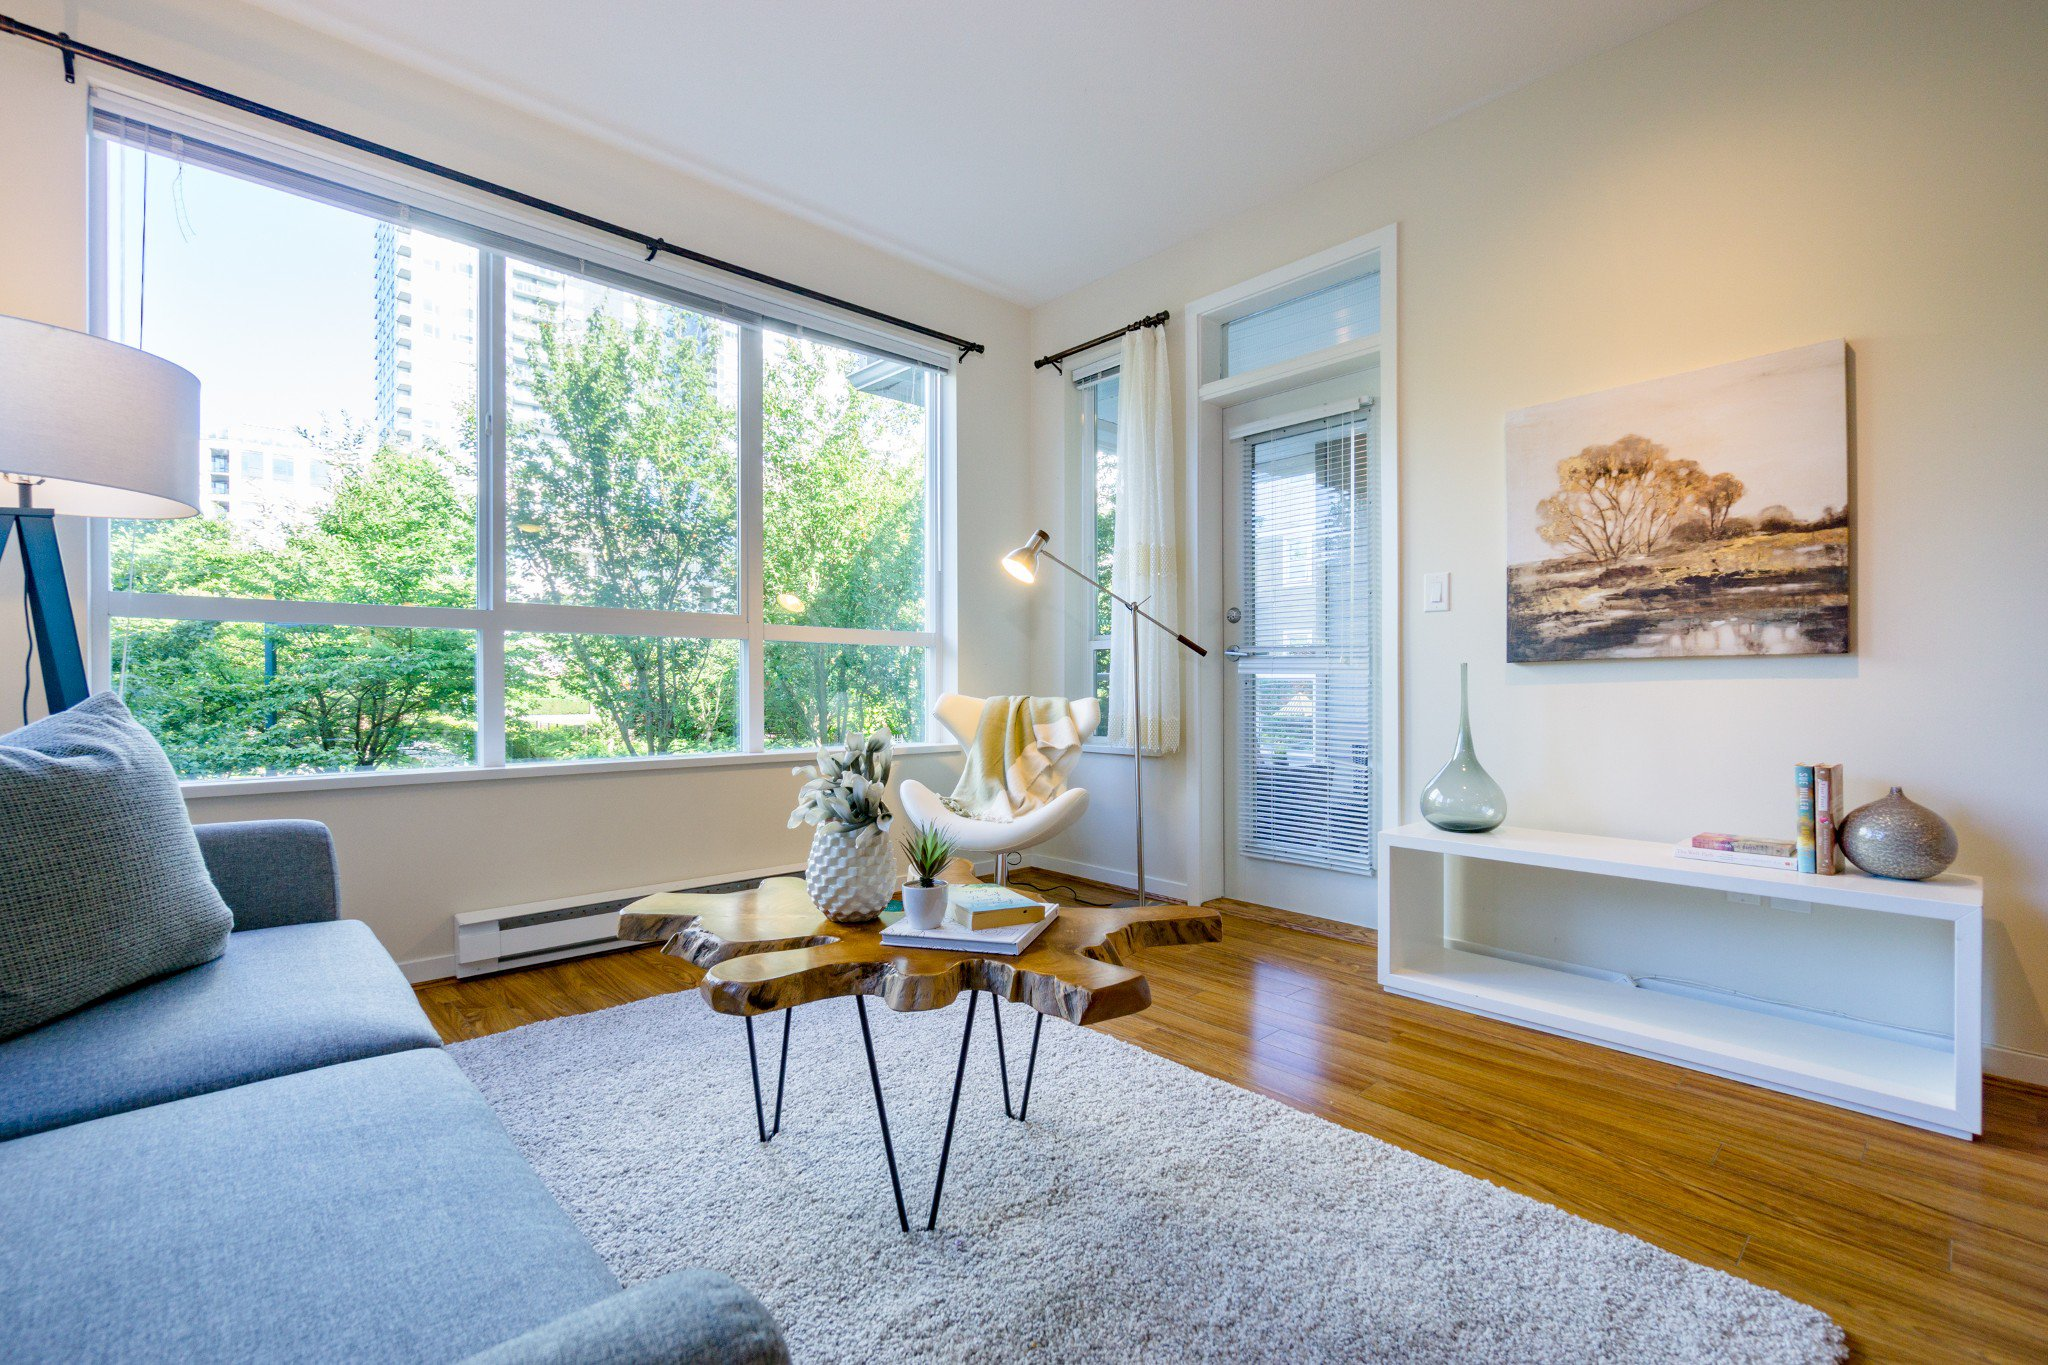 Main Photo: 208 3551 FOSTER Avenue in Vancouver: Collingwood VE Condo for sale (Vancouver East)  : MLS®# R2291555